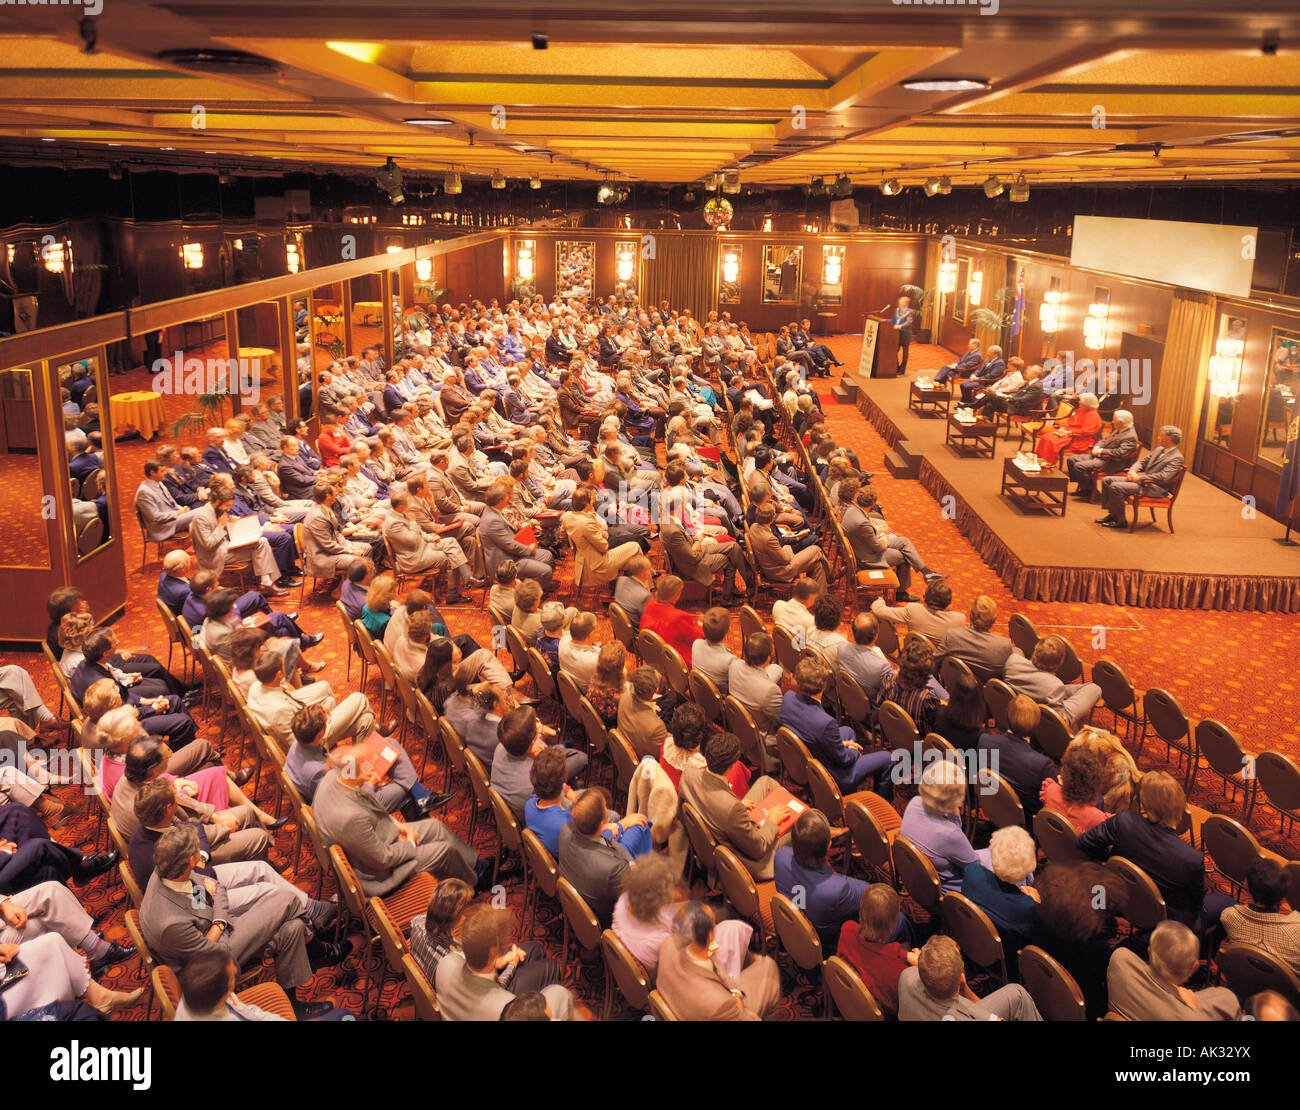 Indoor conference crowd. Audience at seminar. - Stock Image